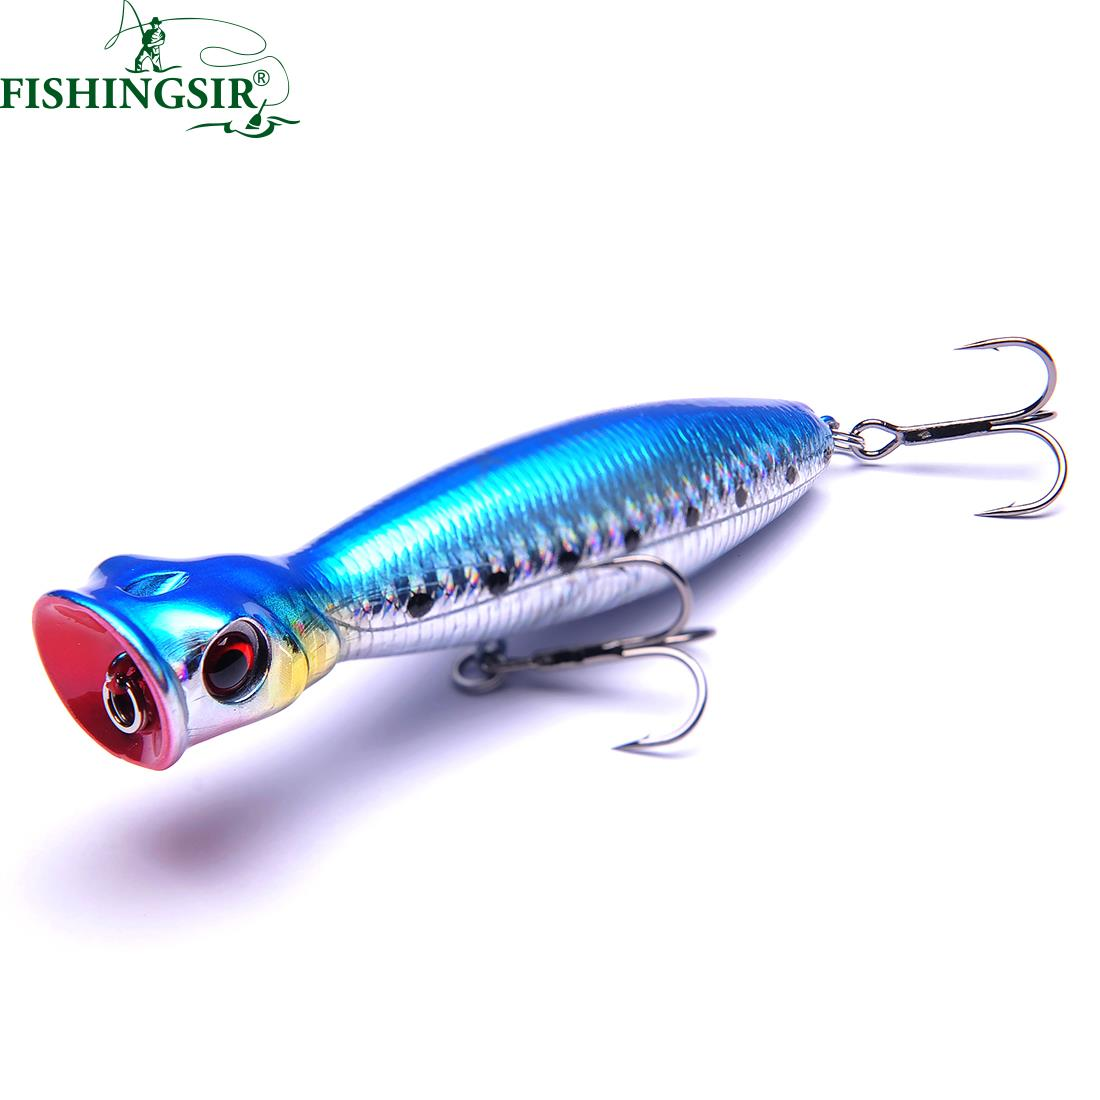 Isca artificial big mouth popper fishing lures 10cm 16g for Big 5 fishing